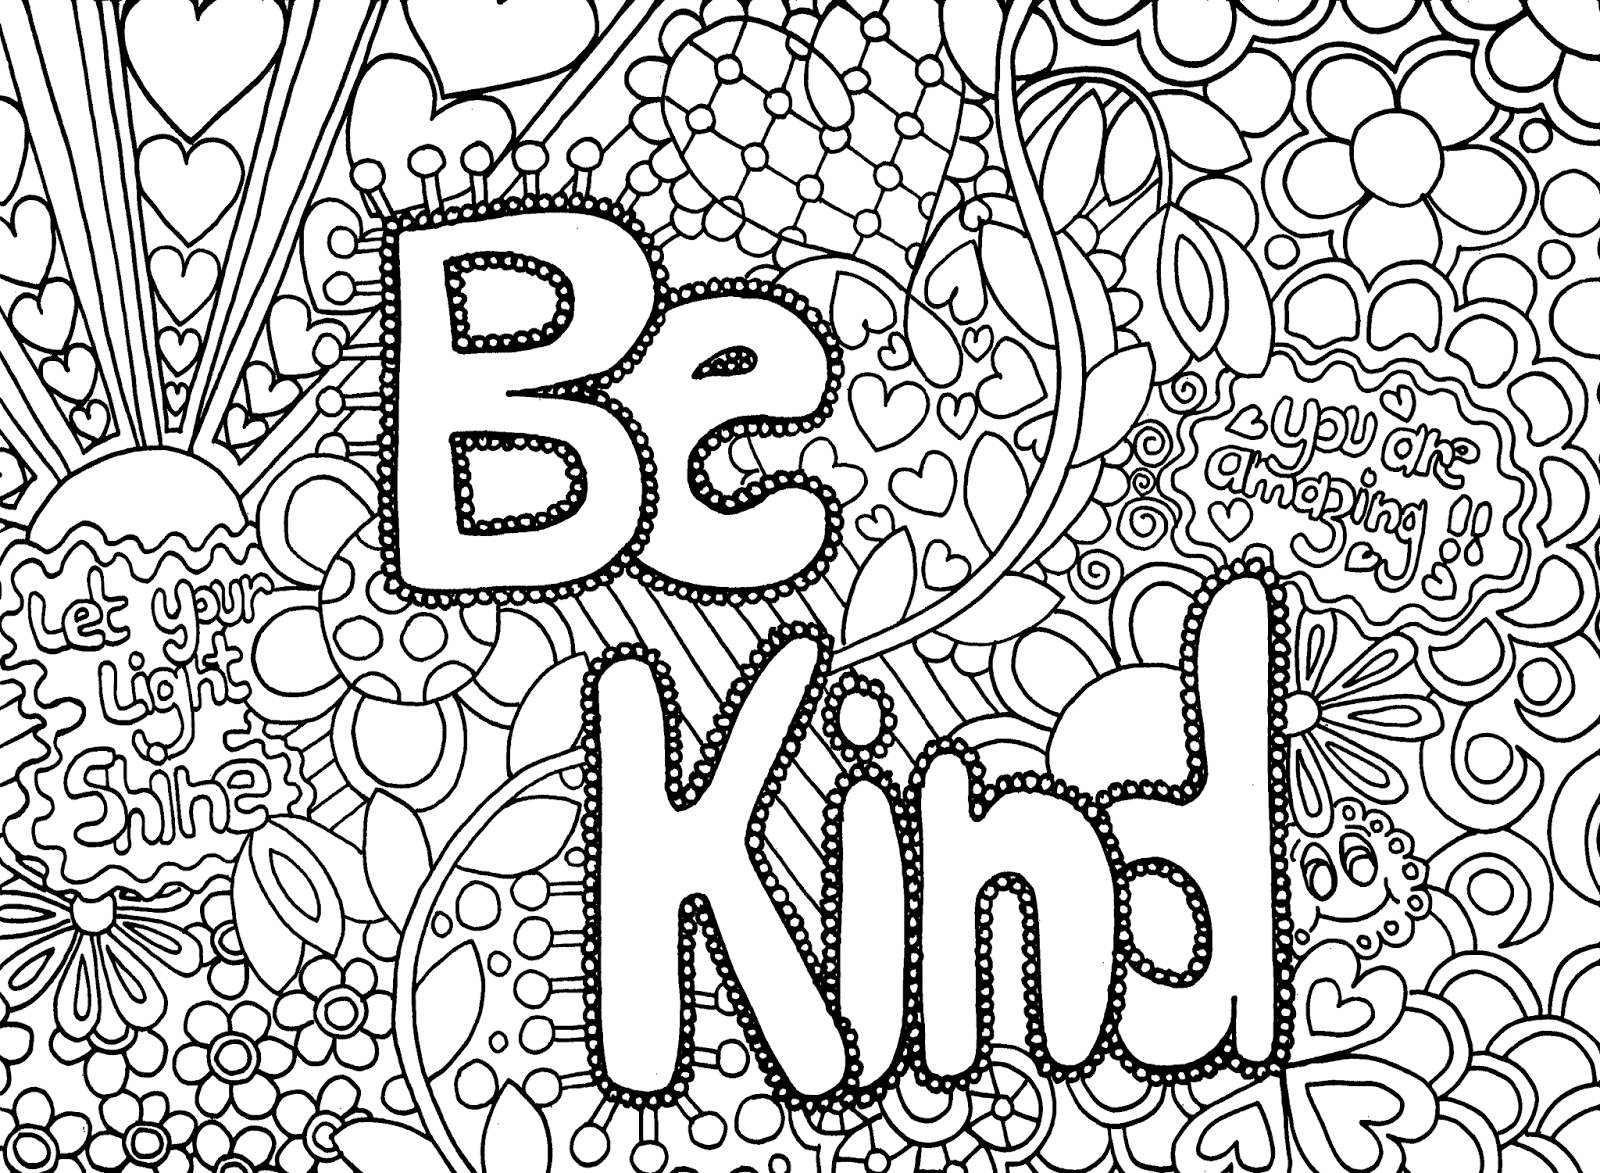 Difficult_Coloring_Pages_Printable_07